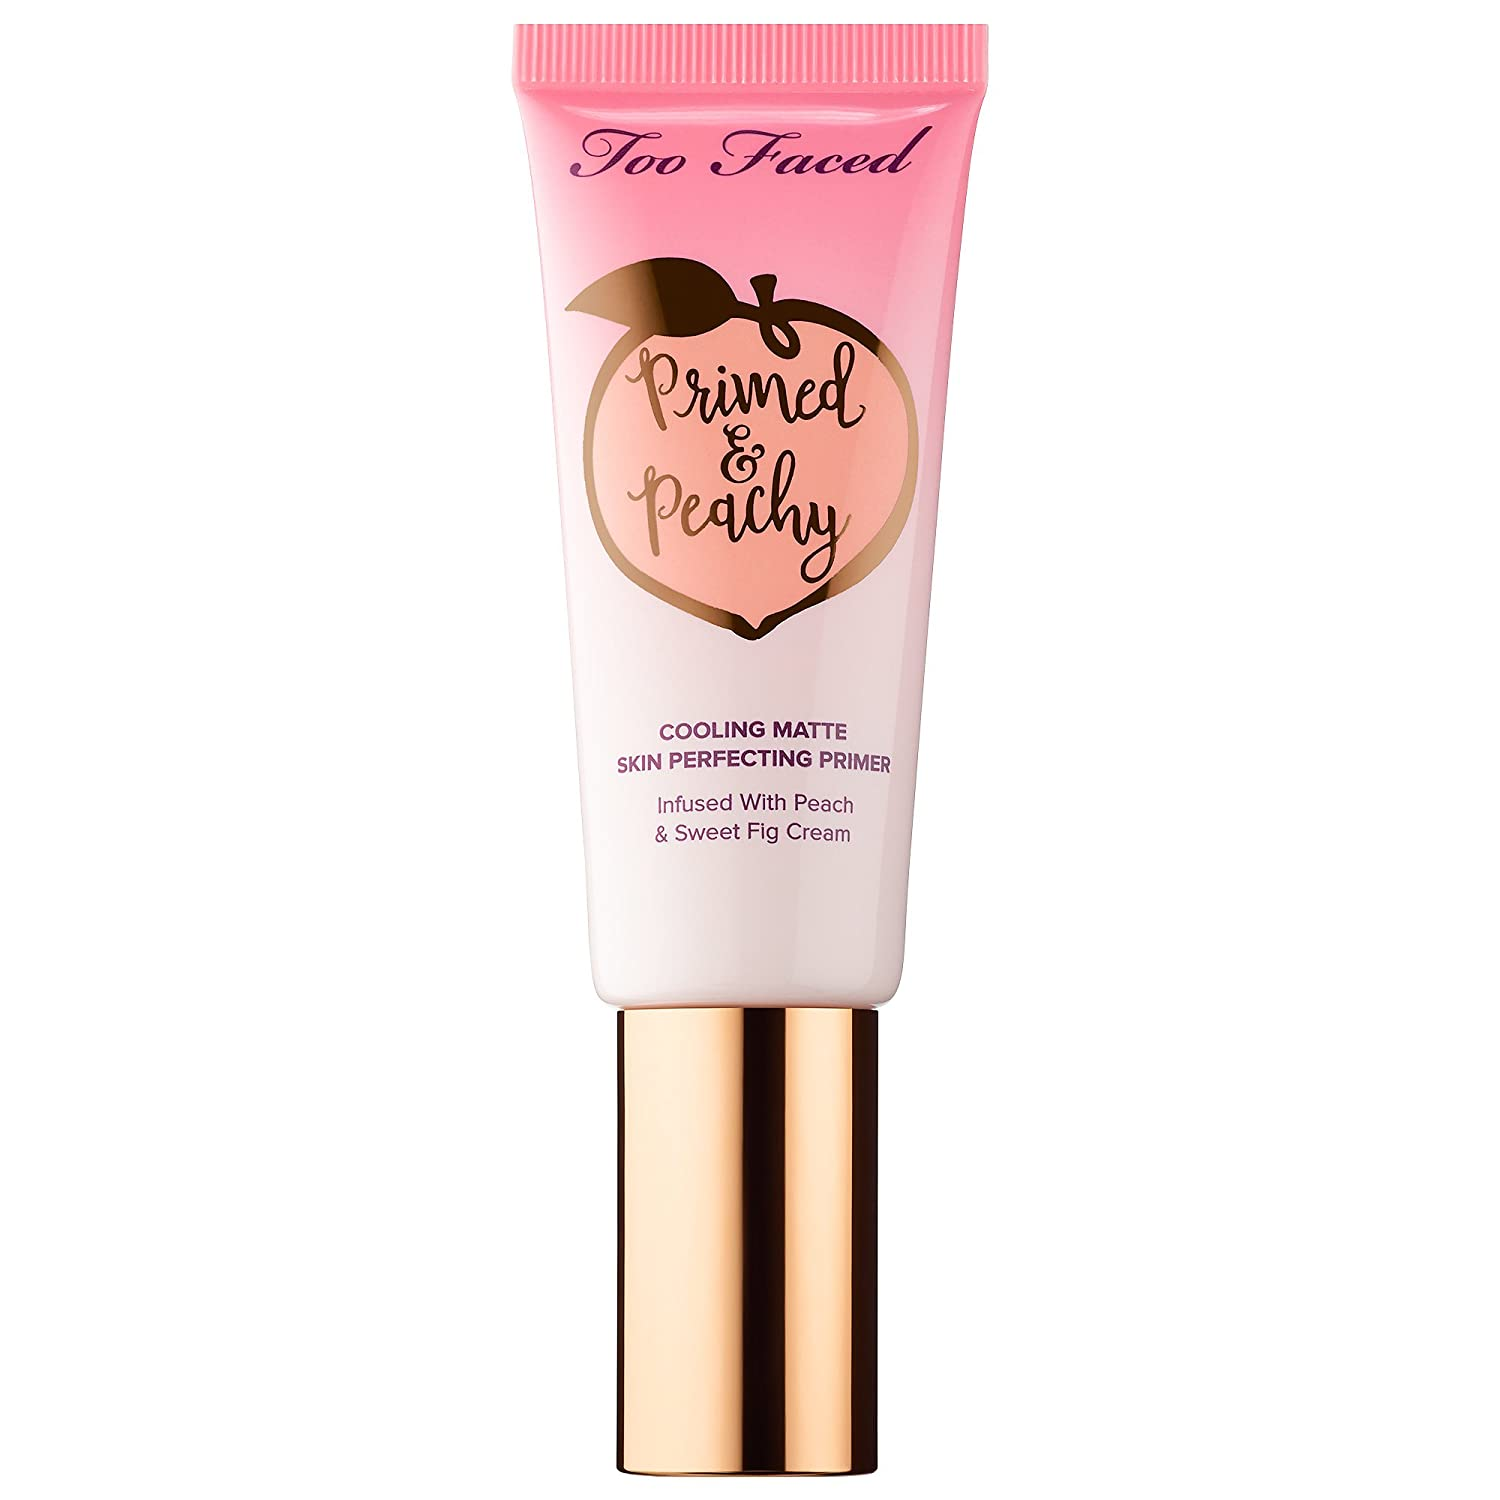 Too Faced Primed & Peachy Cooling Matte Perfecting Primer, 40 mL / 1.35 Fl.Oz.